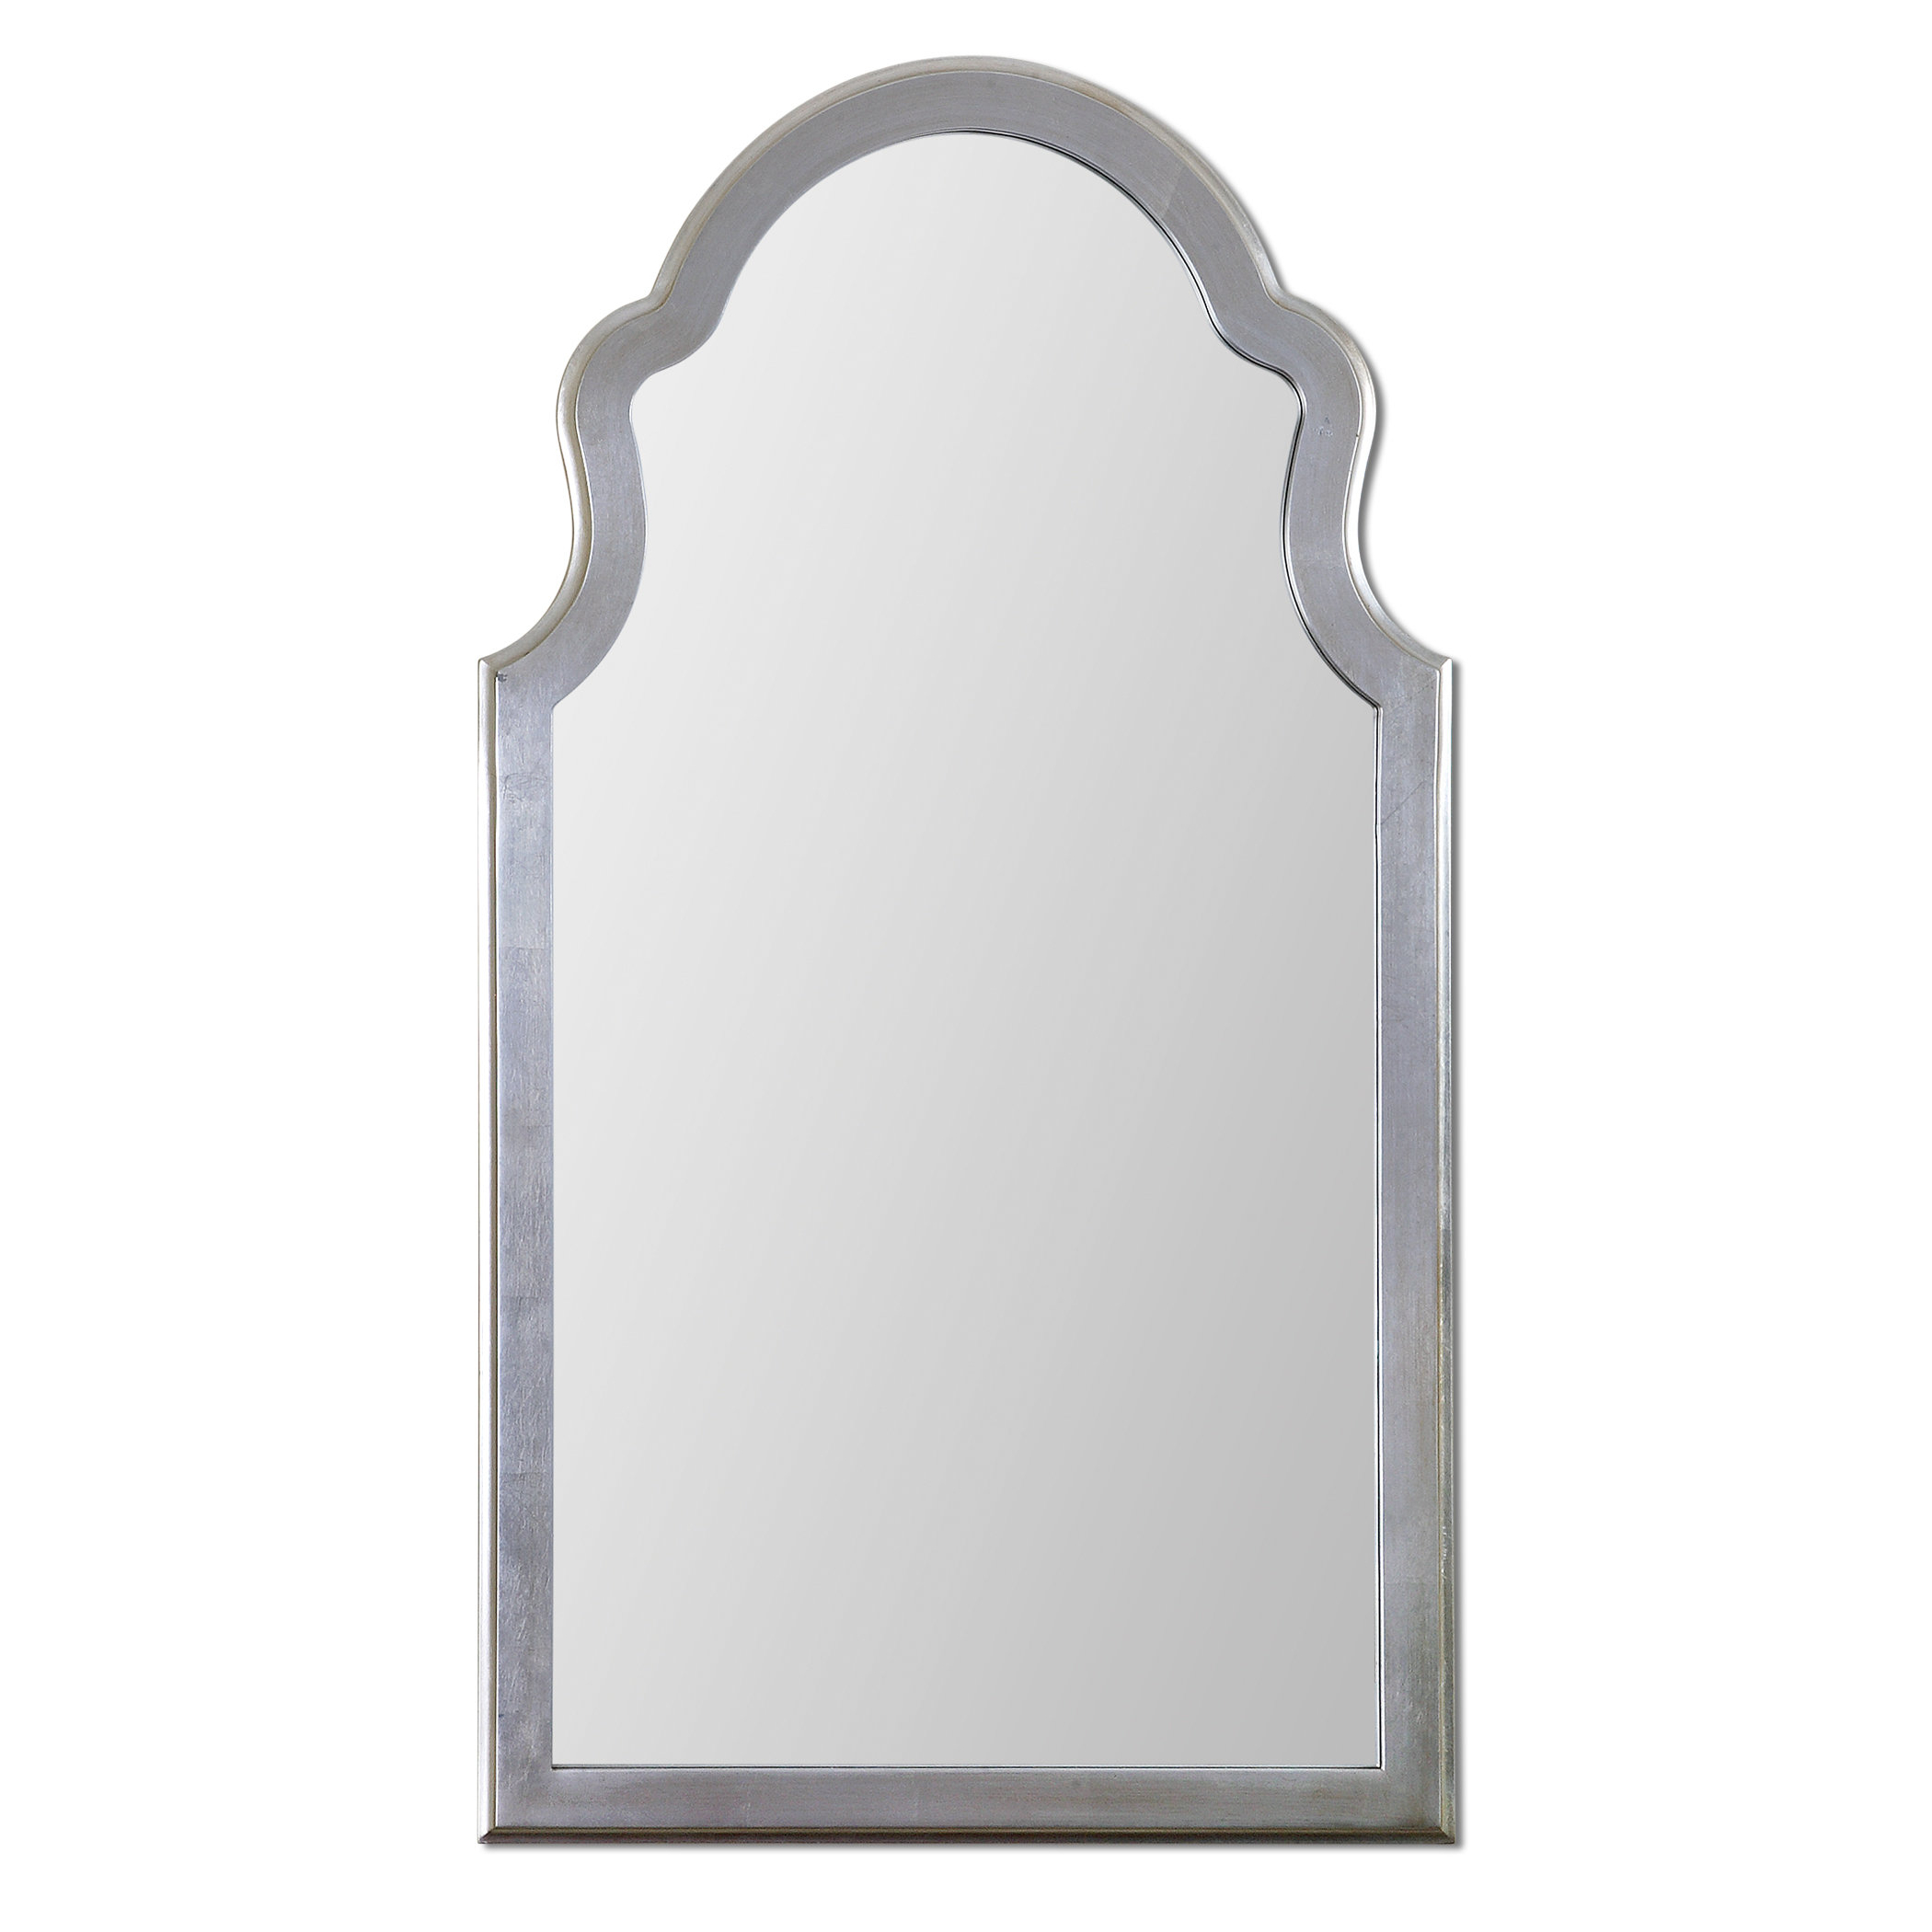 Morlan Accent Mirrors Within Latest Farmhouse & Rustic Alcott Hill Wall & Accent Mirrors (View 11 of 20)